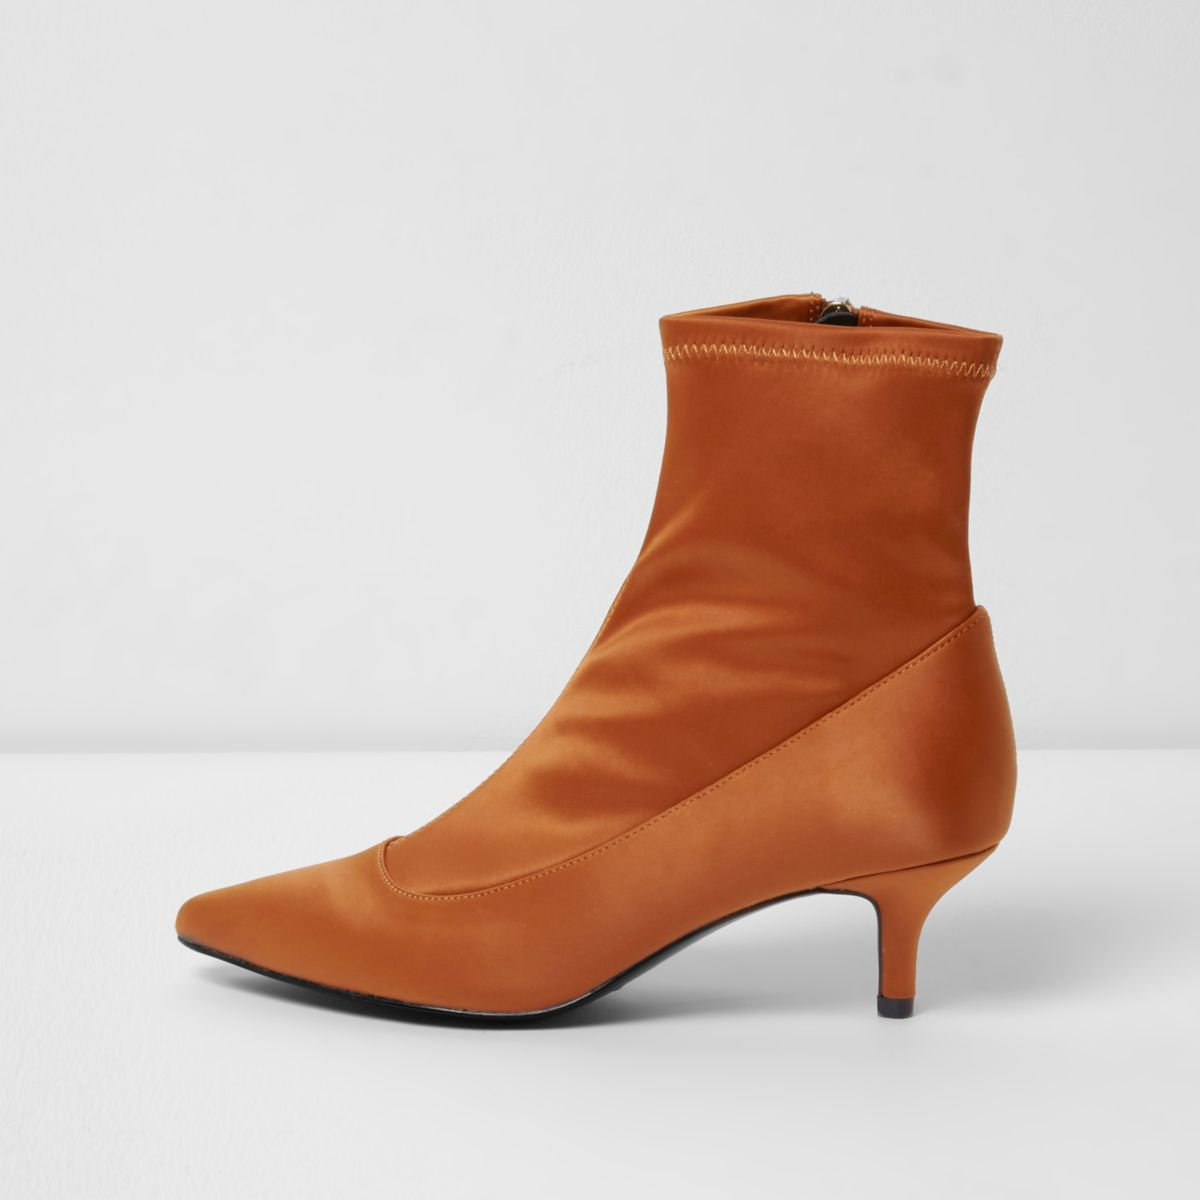 Dark orange kitten heel sock boots